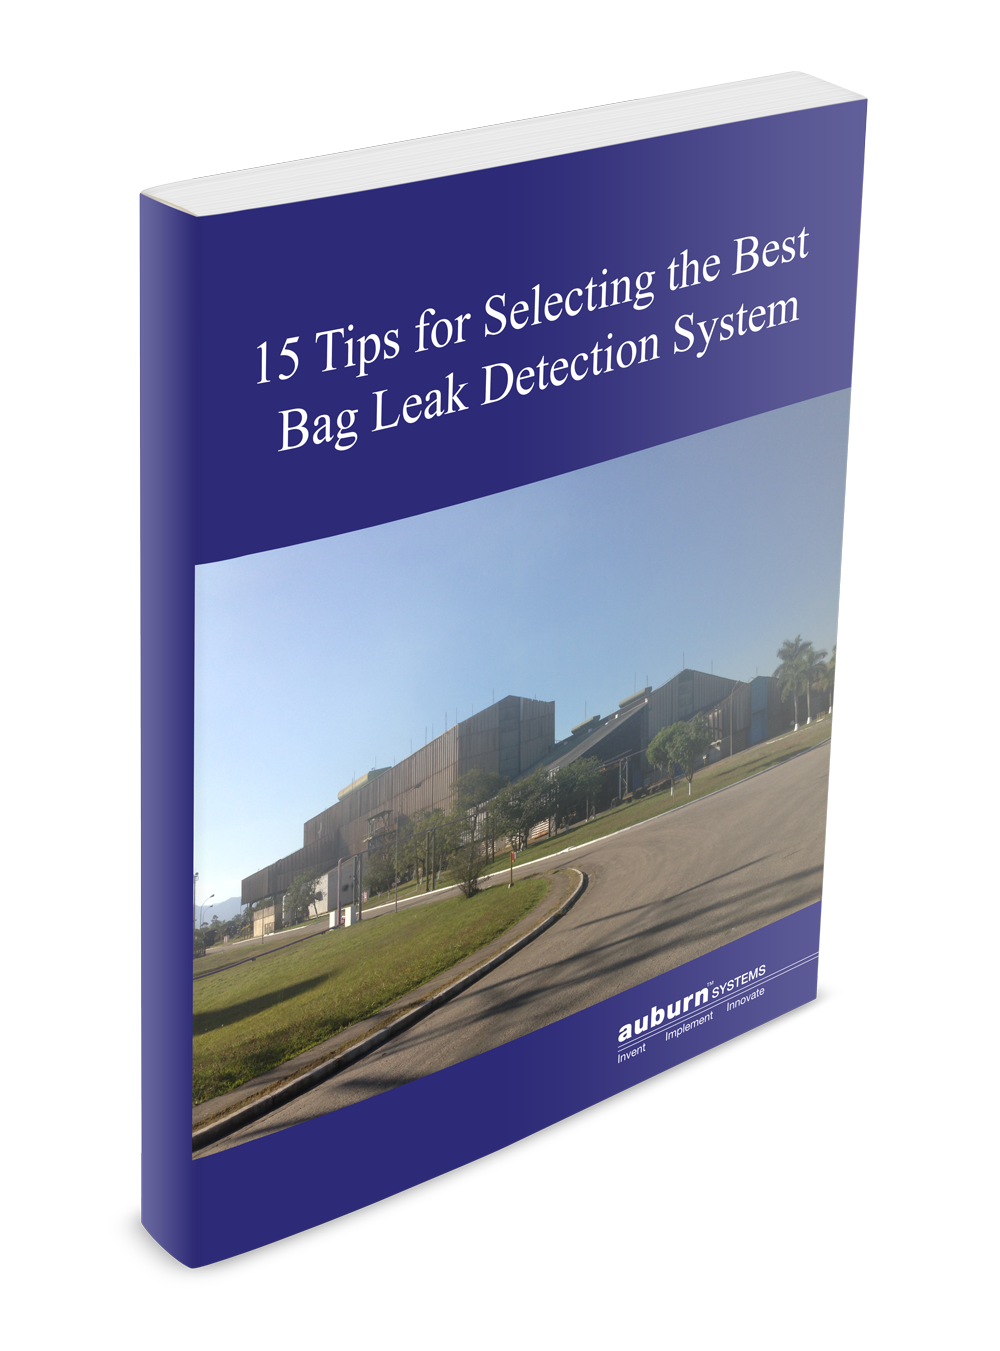 Auburn_eBook_Selecting_the_Best_Bag_Lead_Detection_System_Cover.png